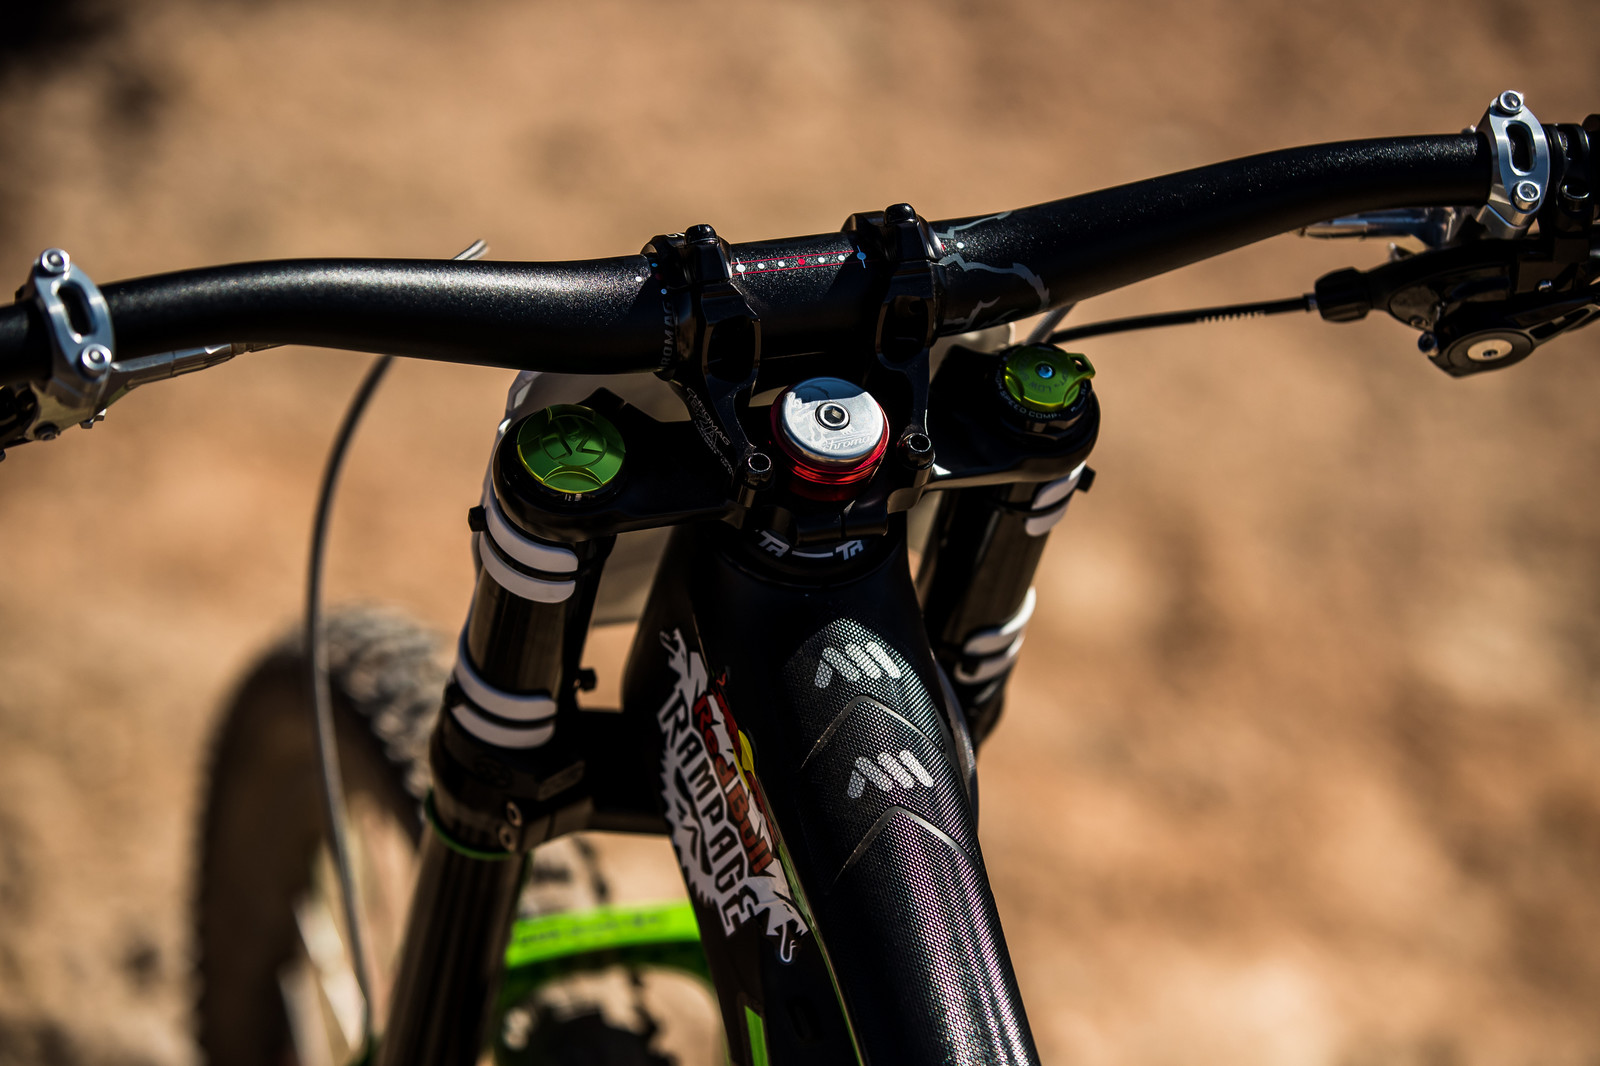 Cockpit on Juan Diego Salido's Transition TR11 at Rampage 2019 - RAMPAGE BIKE - Juan Diego Salido's Transition TR11 - Mountain Biking Pictures - Vital MTB